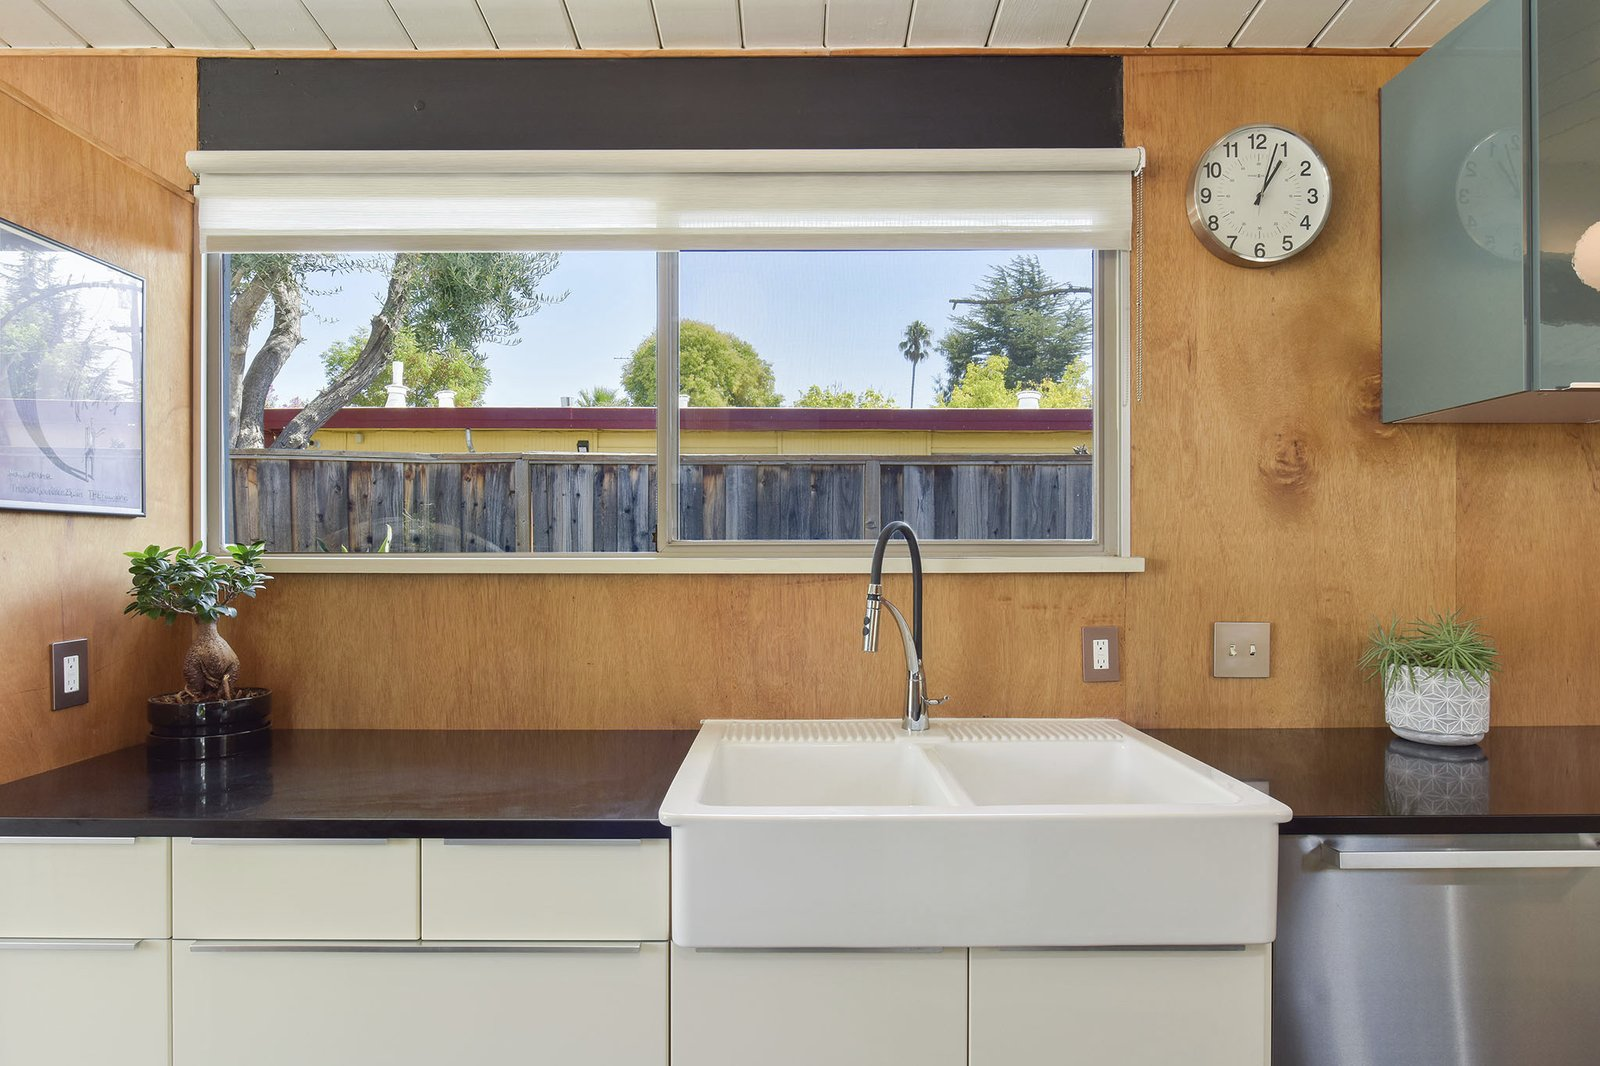 Kitchen, Vessel, Dishwasher, White, and Wood The double sink.  Kitchen Dishwasher Vessel Photos from This Stunning Bay Area Eichler Just Listed For $775K